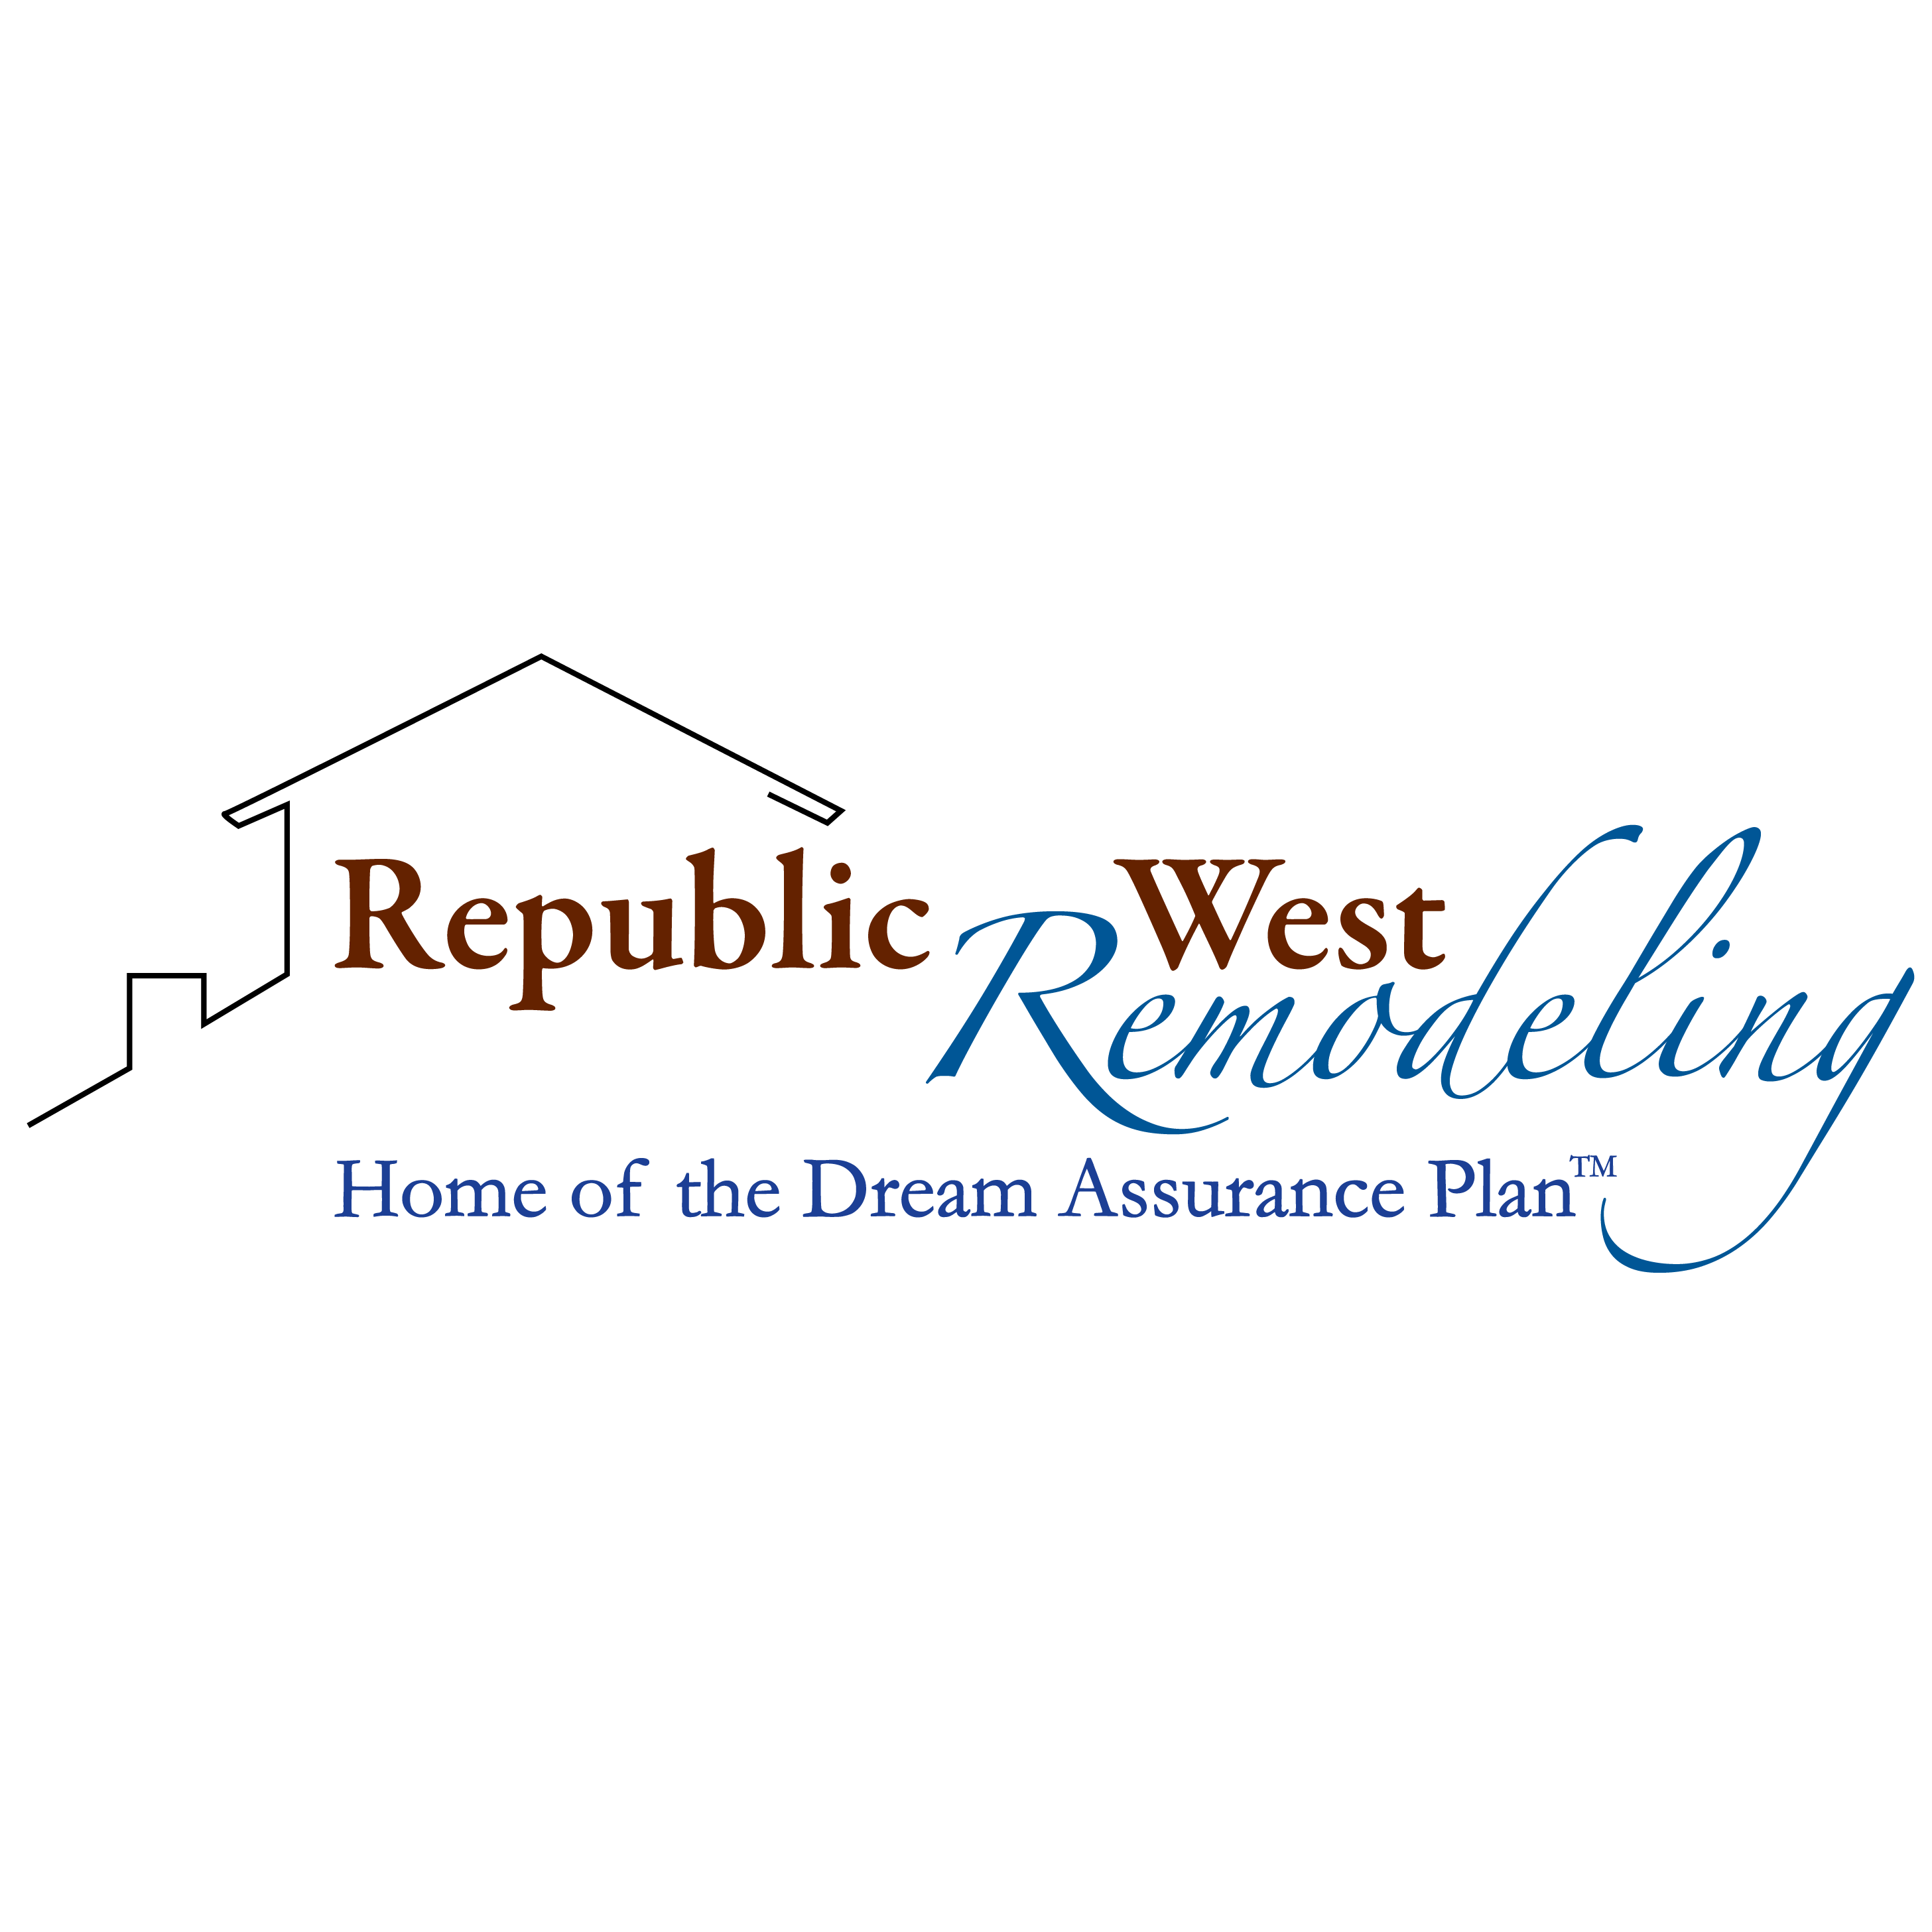 Republic West Remodeling